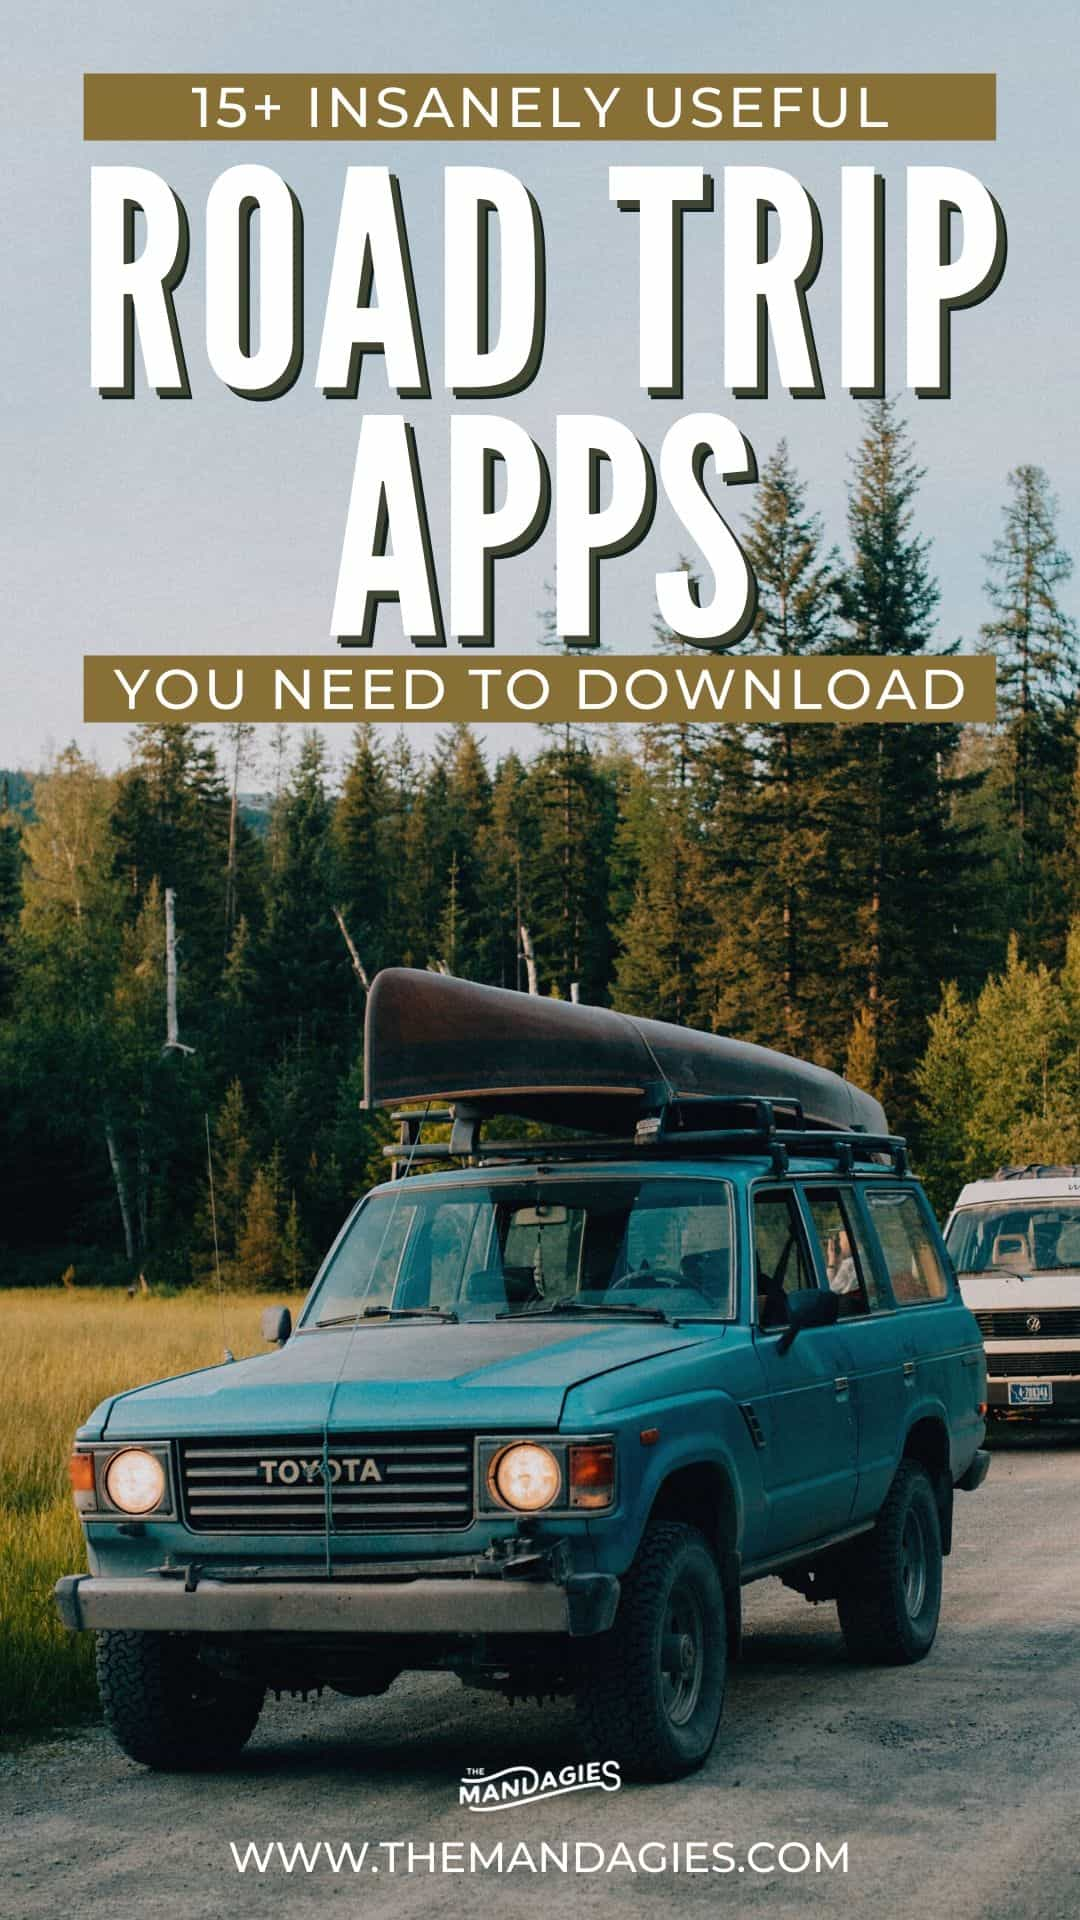 Searching for useful road trip planners to make your next trip a breeze? We're sharing our 15 favorite road trip apps and tools, that help us find everything from the cheapest gas prices to free campsites! Save this post for your next epic summer road trip adventure! #roadtrip #summer #camping #campsite #roadtripplanner #adventure #USA #travel #photography